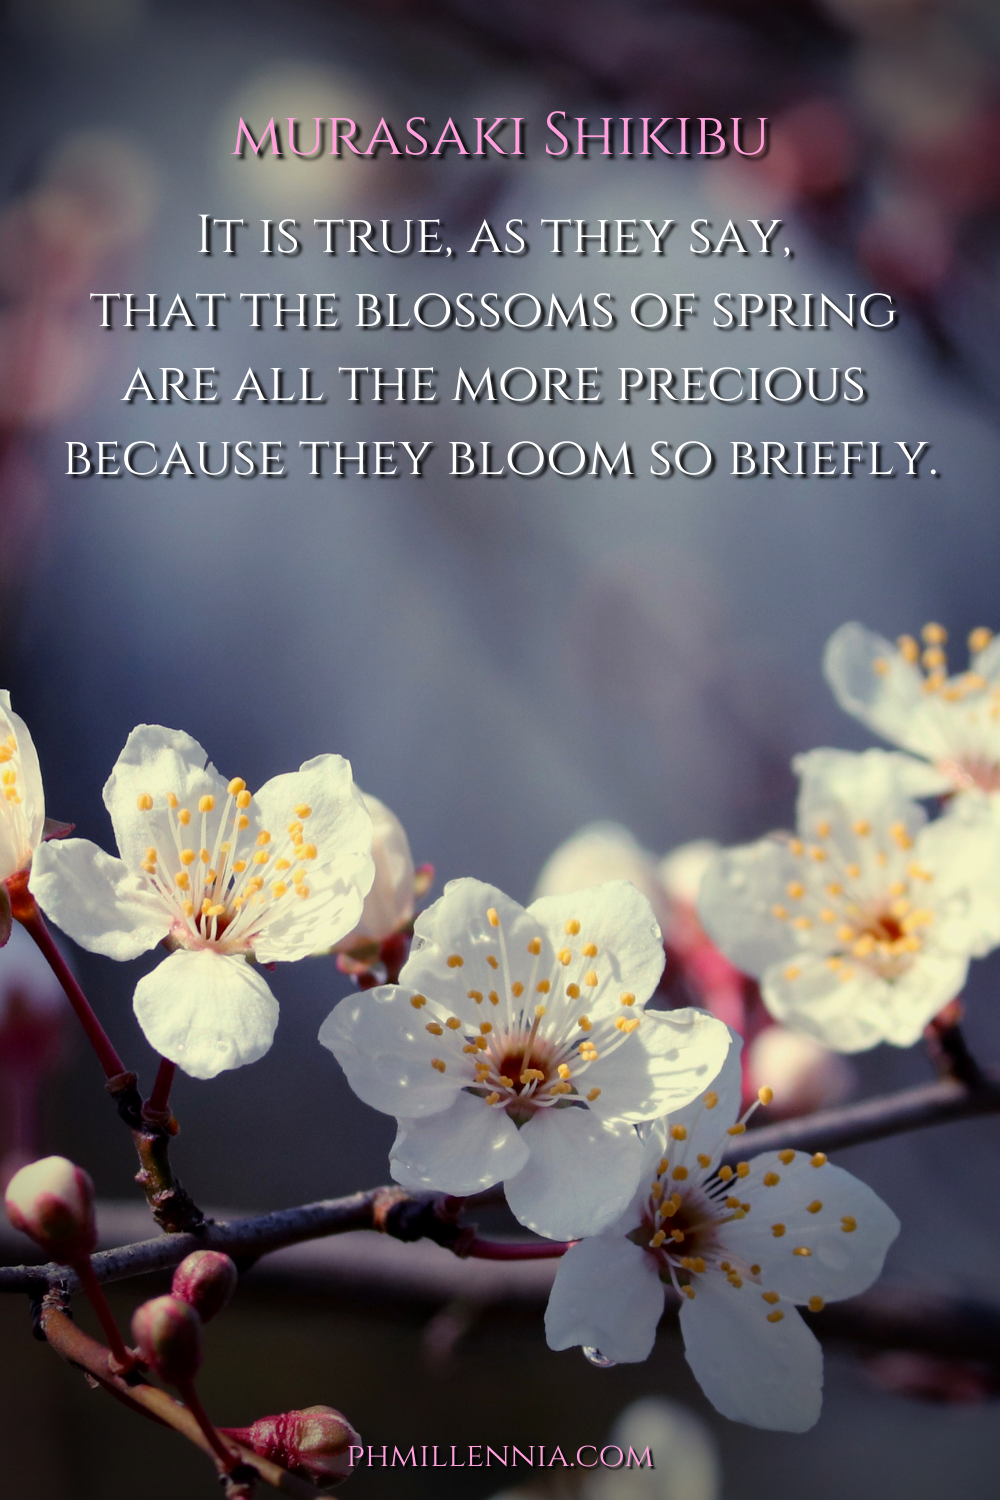 50 Beautiful Brilliant Quotes About Cherry Blossoms Sakura Quotes Sayings Phmillennia Com In 2021 Cherry Blossom Quotes Blossom Quotes Brilliant Quote